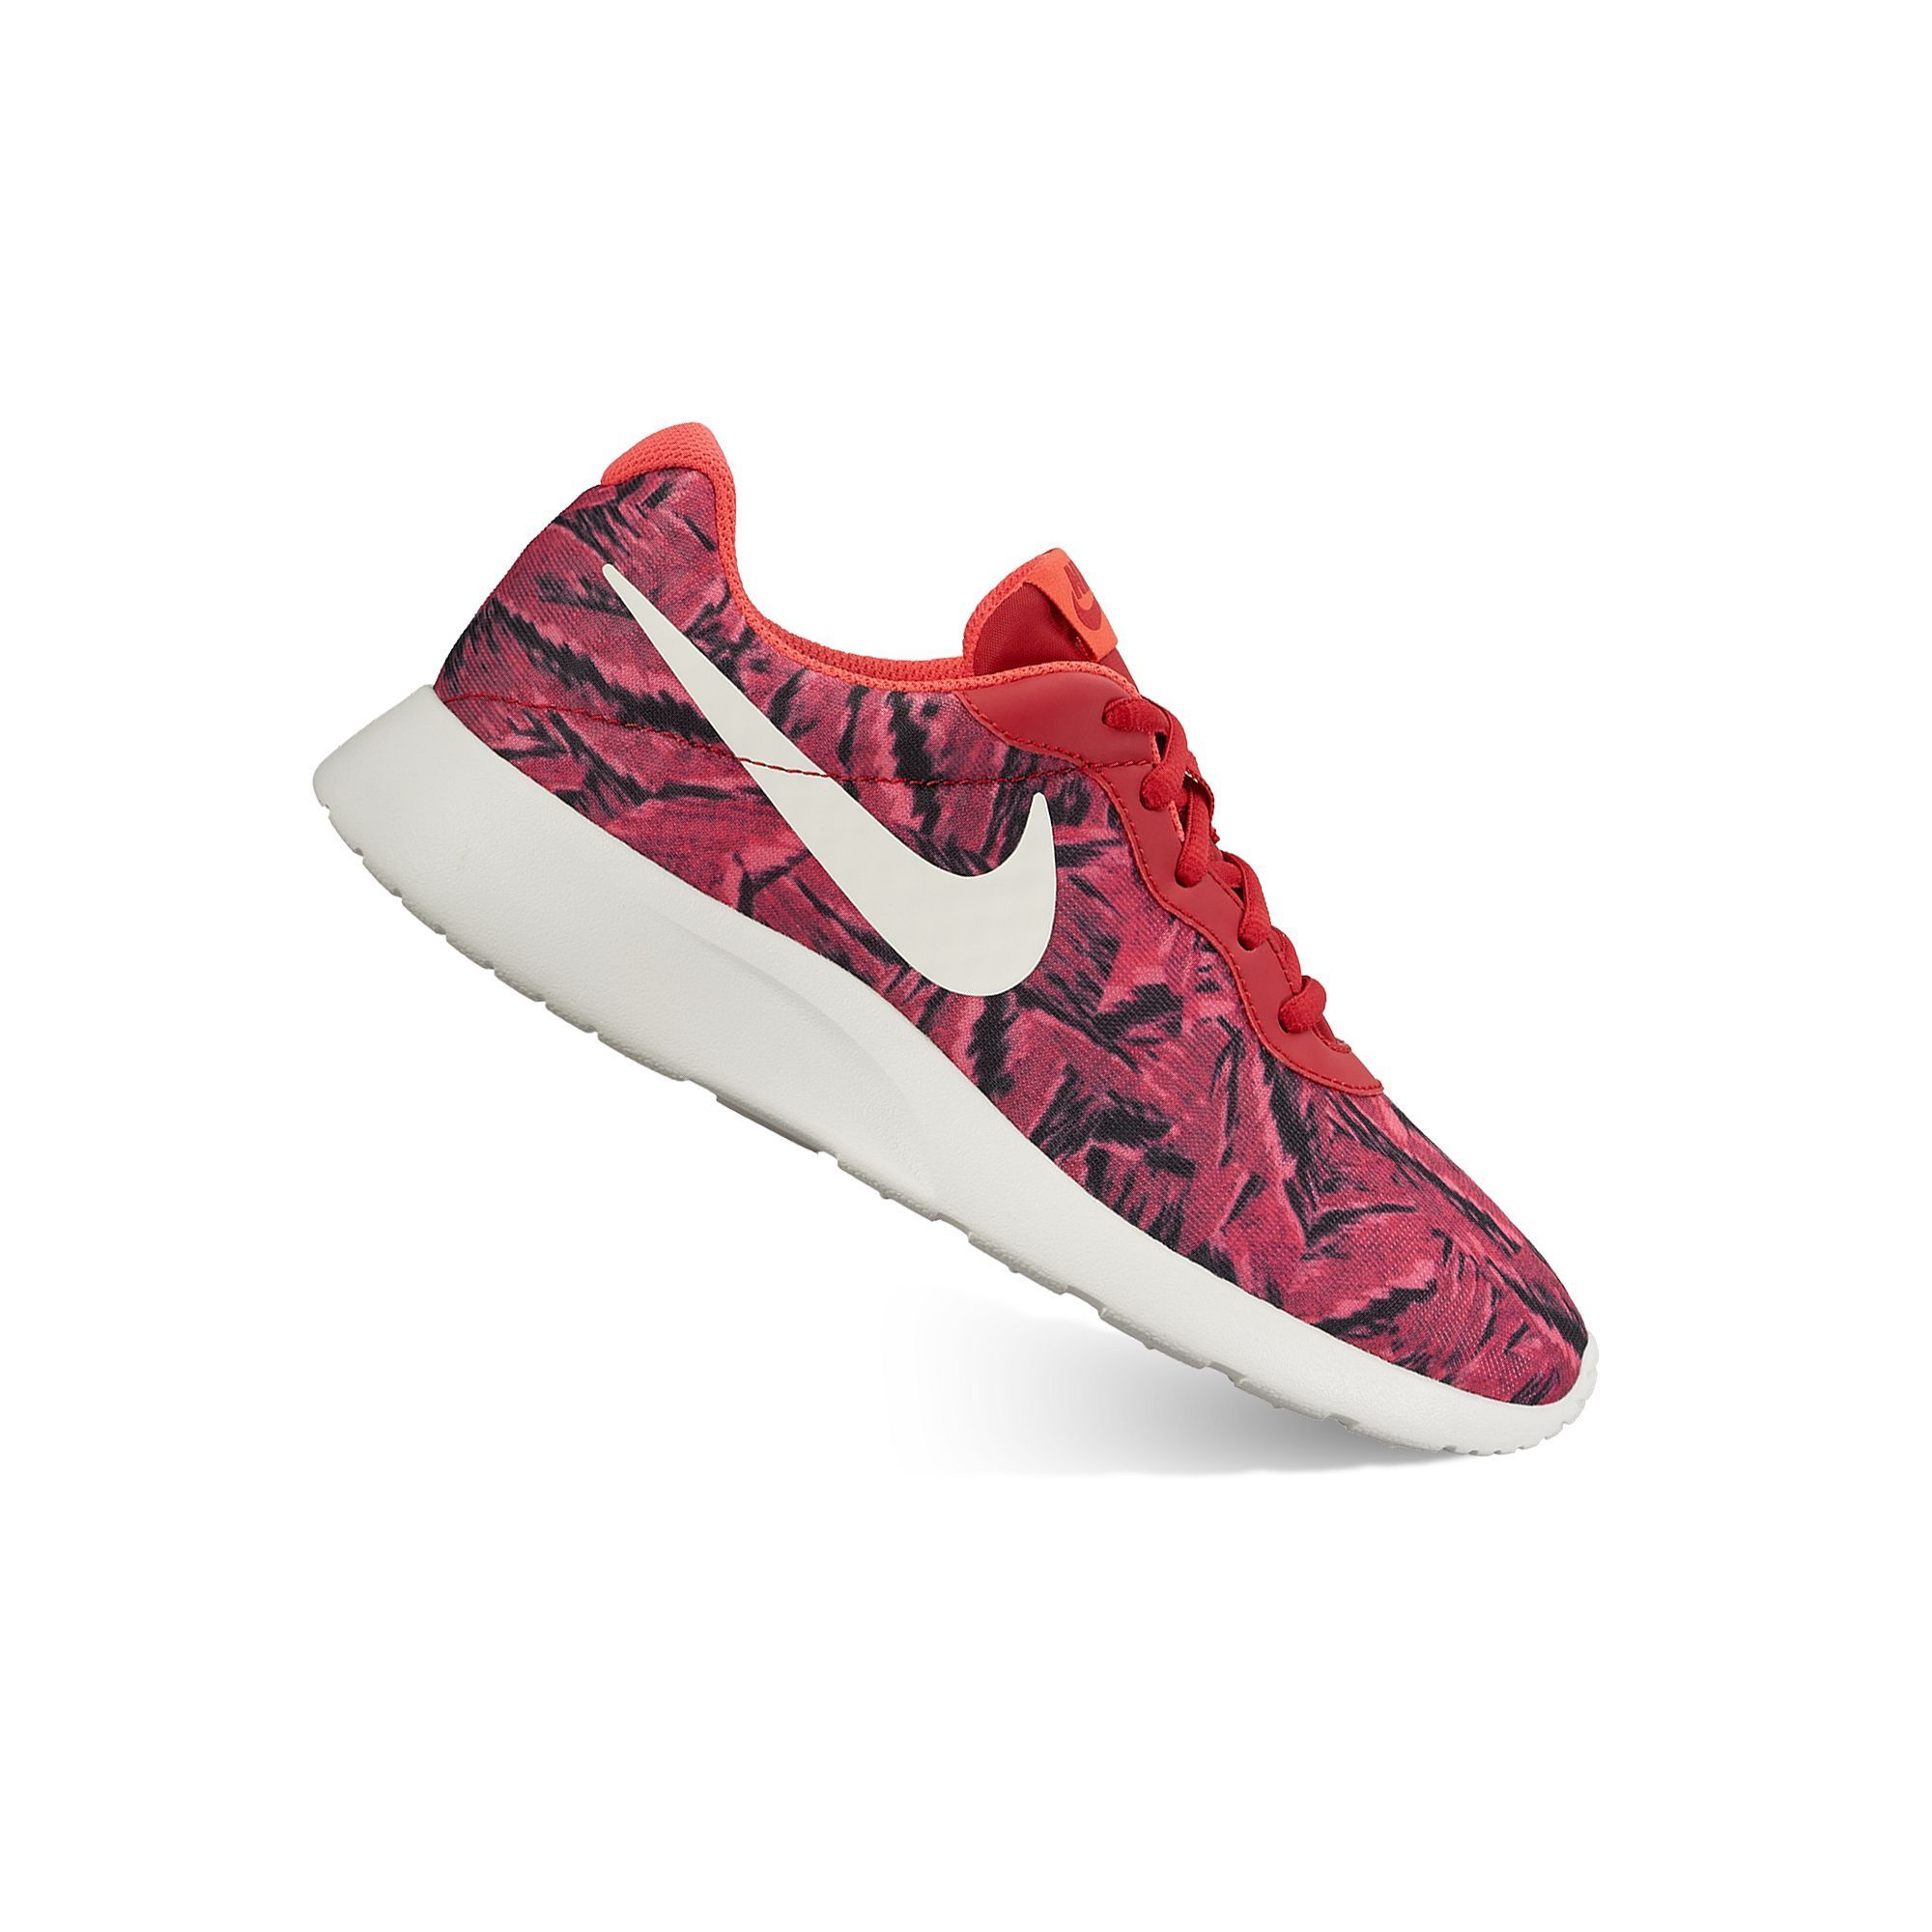 b90d025c1d6 Nike Tanjun Women s Camo Print Athletic Shoes in 2019